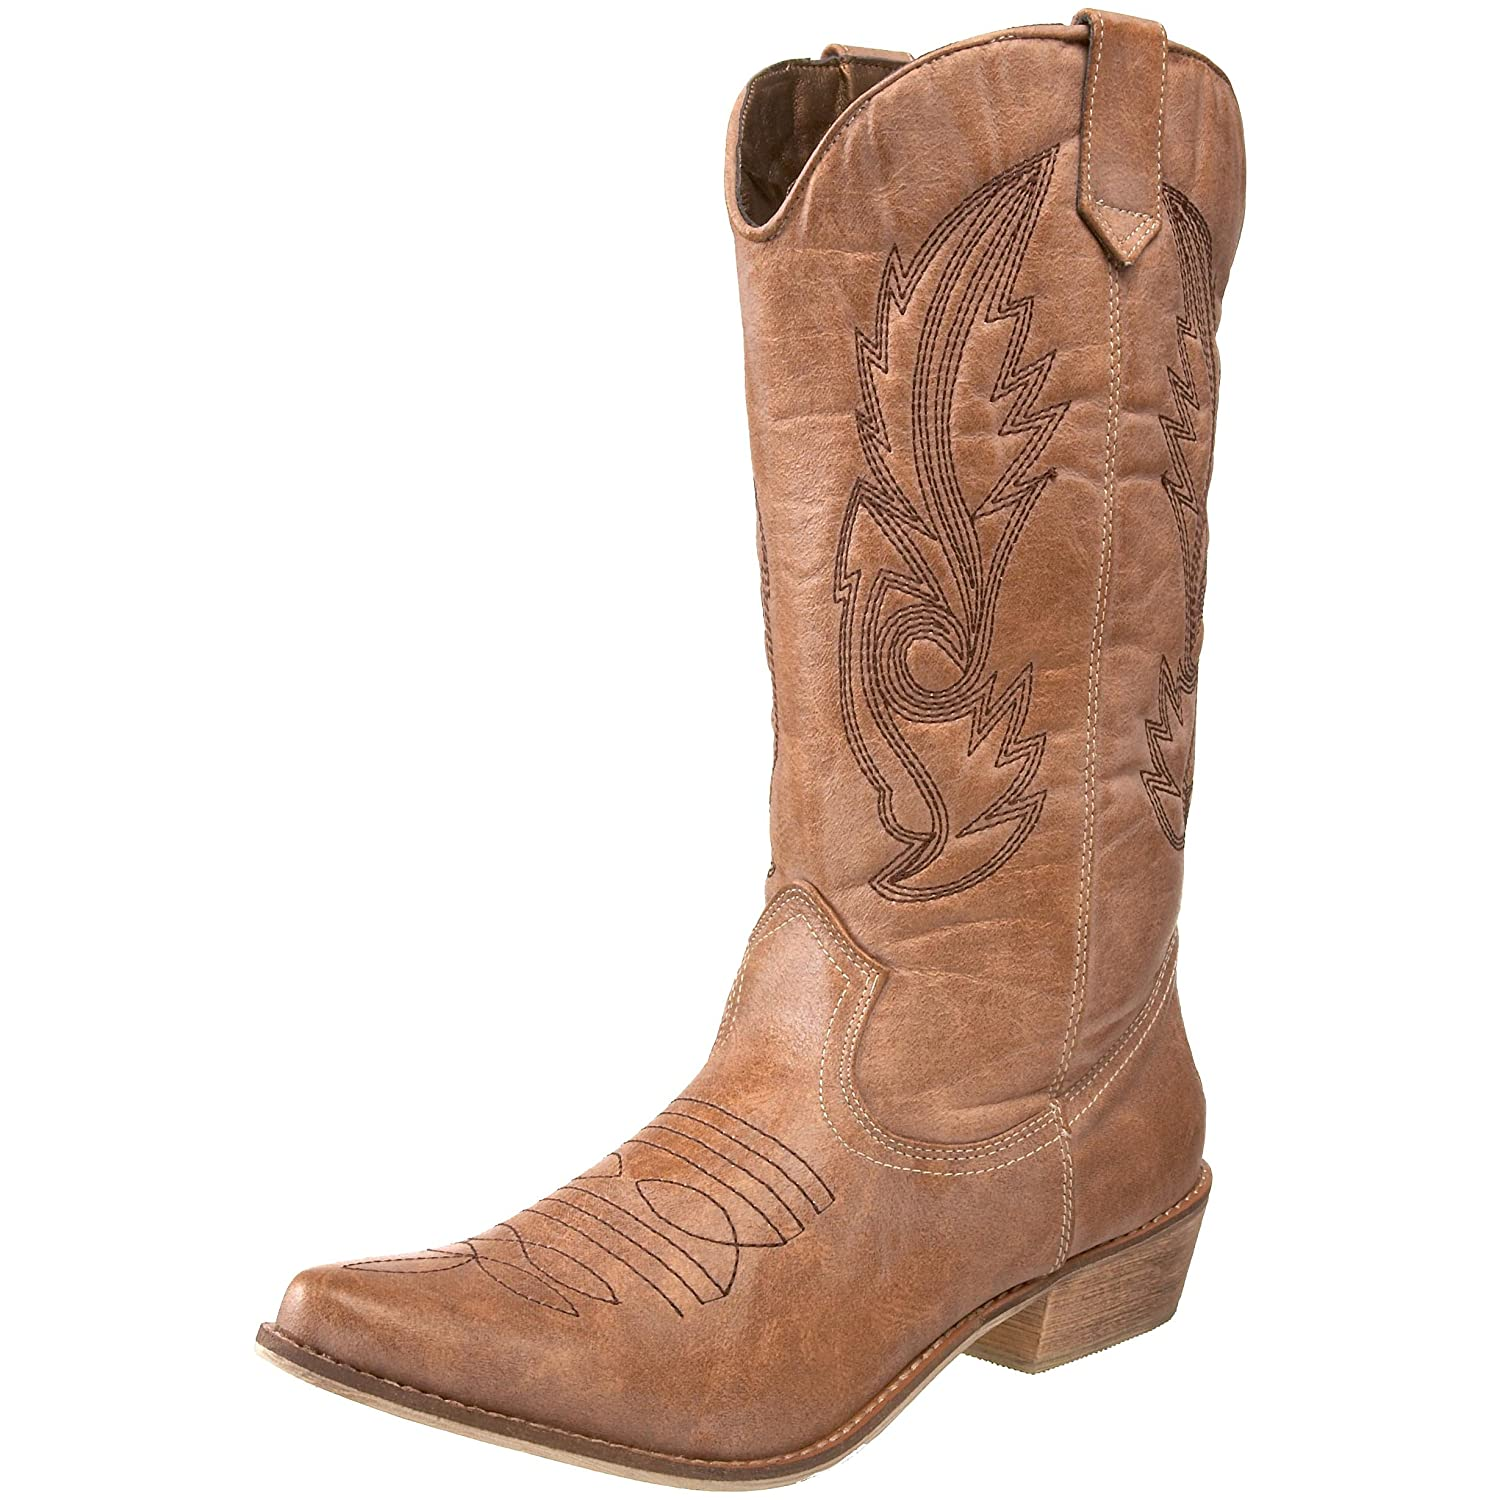 69100d71be6 Coconuts By Matisse Women's Gaucho Boot